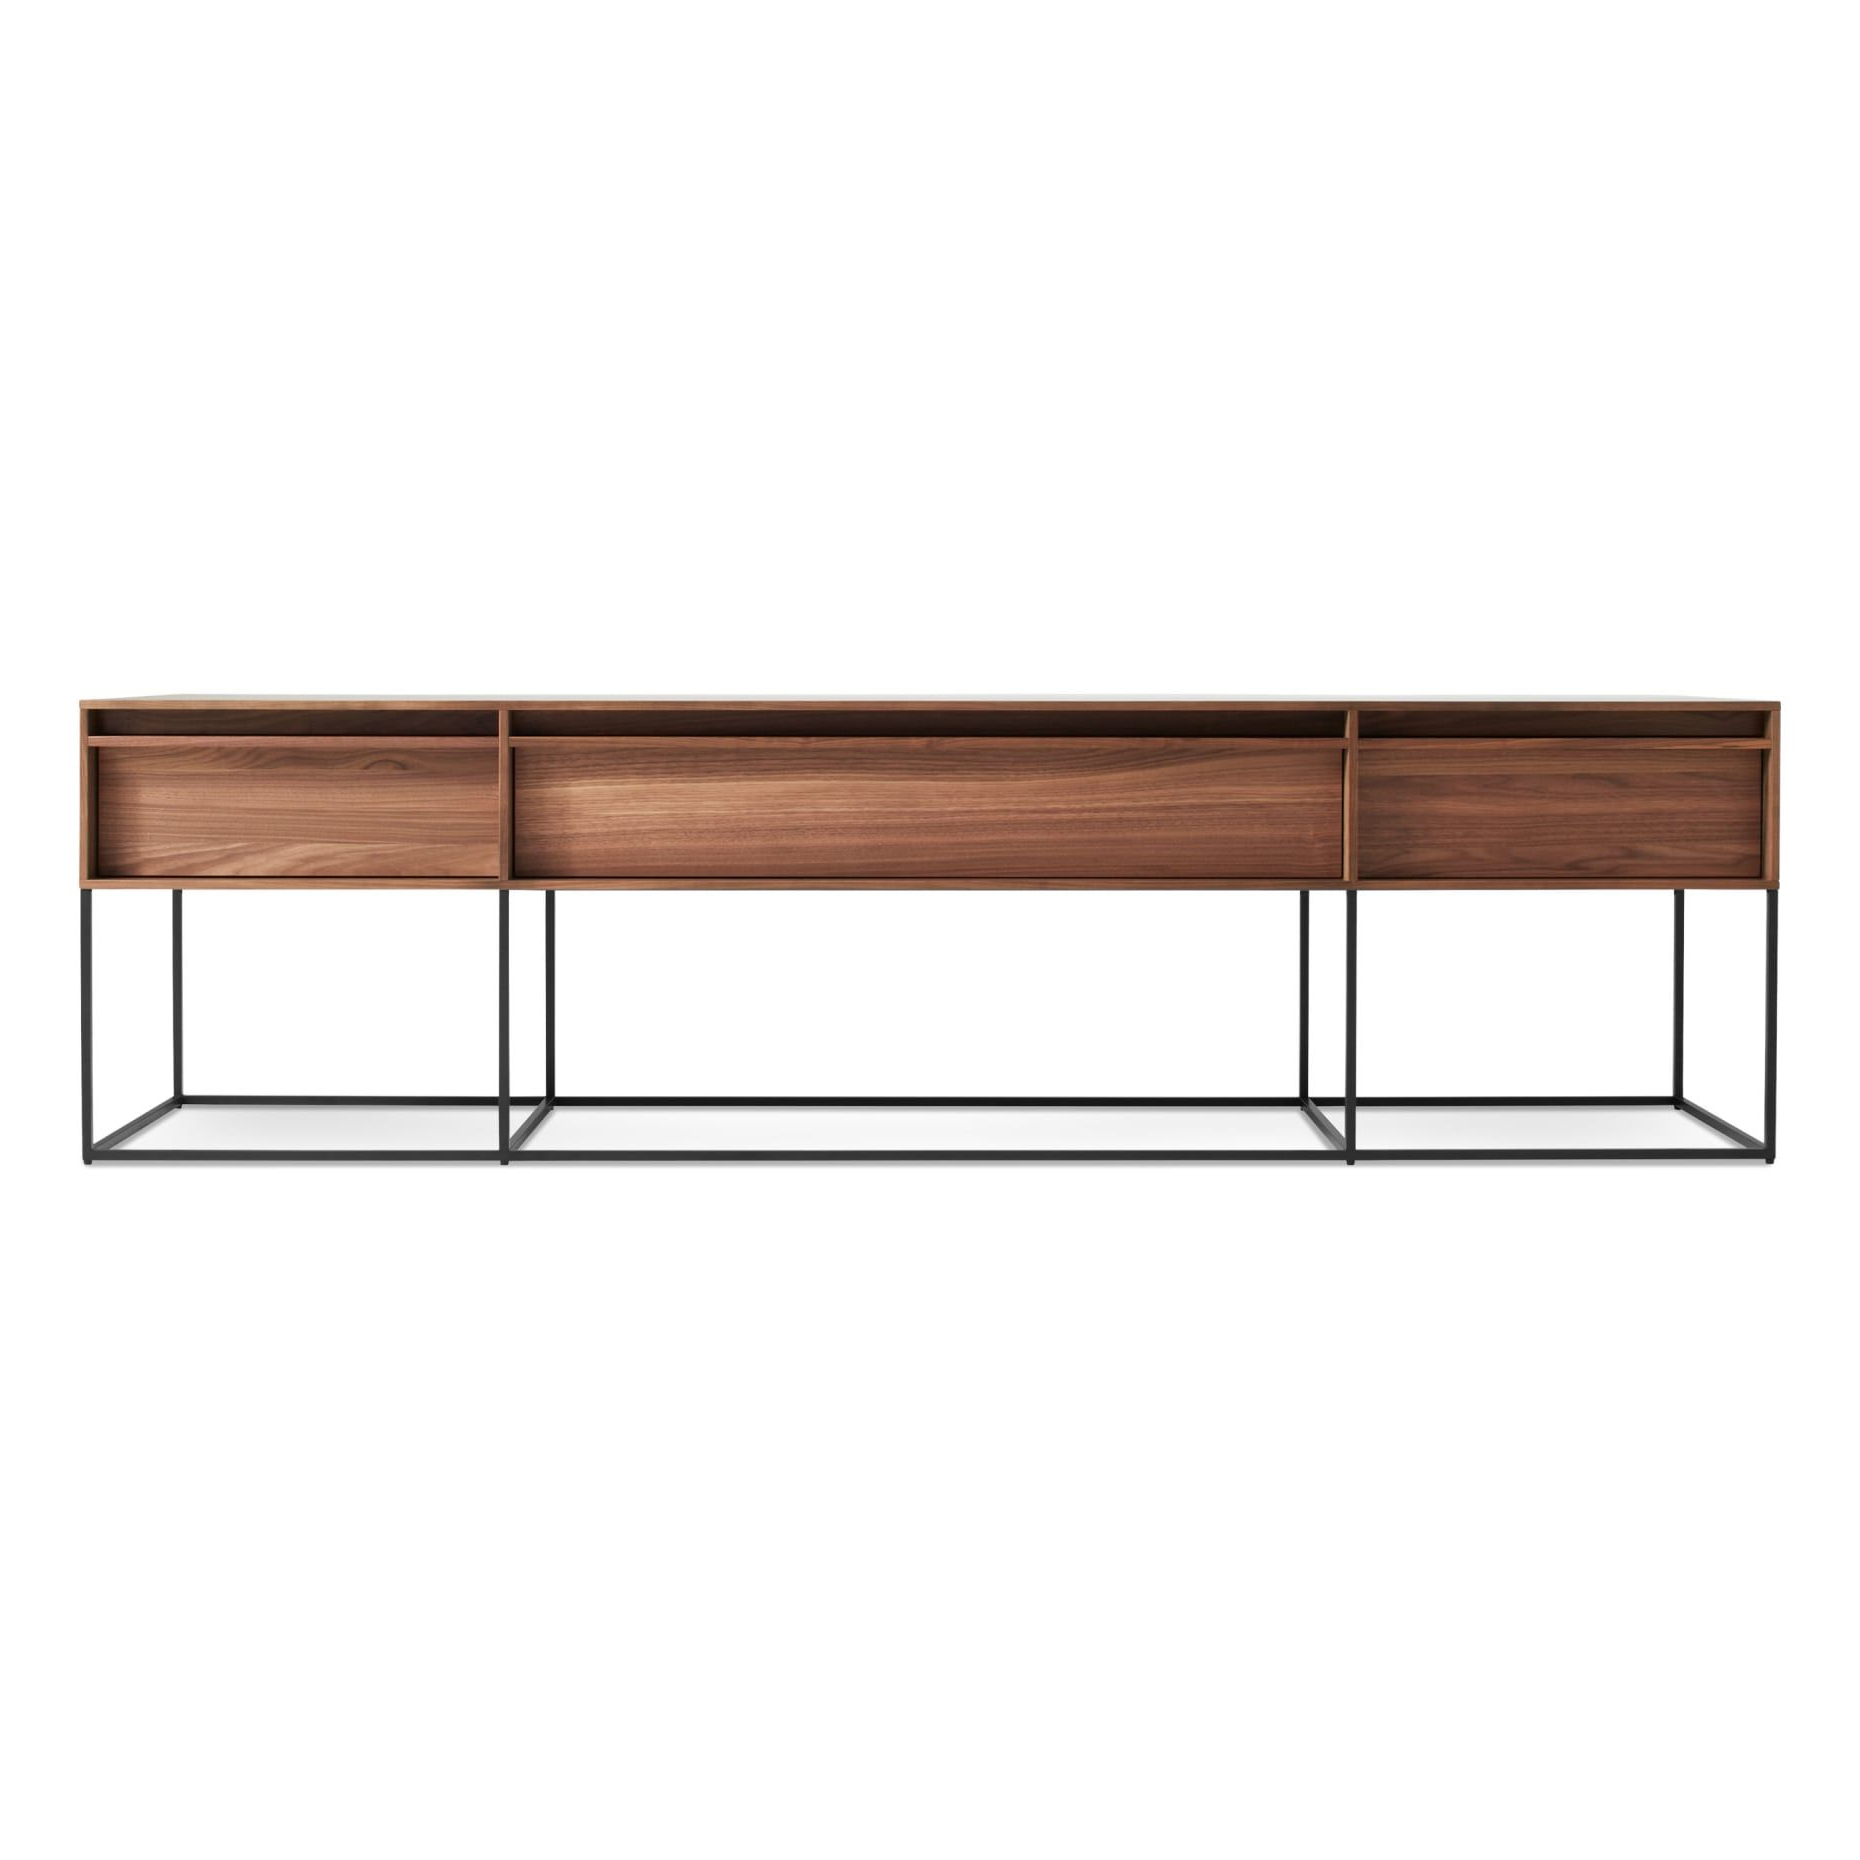 Rule Long And Low | F U R N I T U R E | Pinterest | Console Table Inside Oak & Brass Stacking Media Console Tables (View 12 of 20)